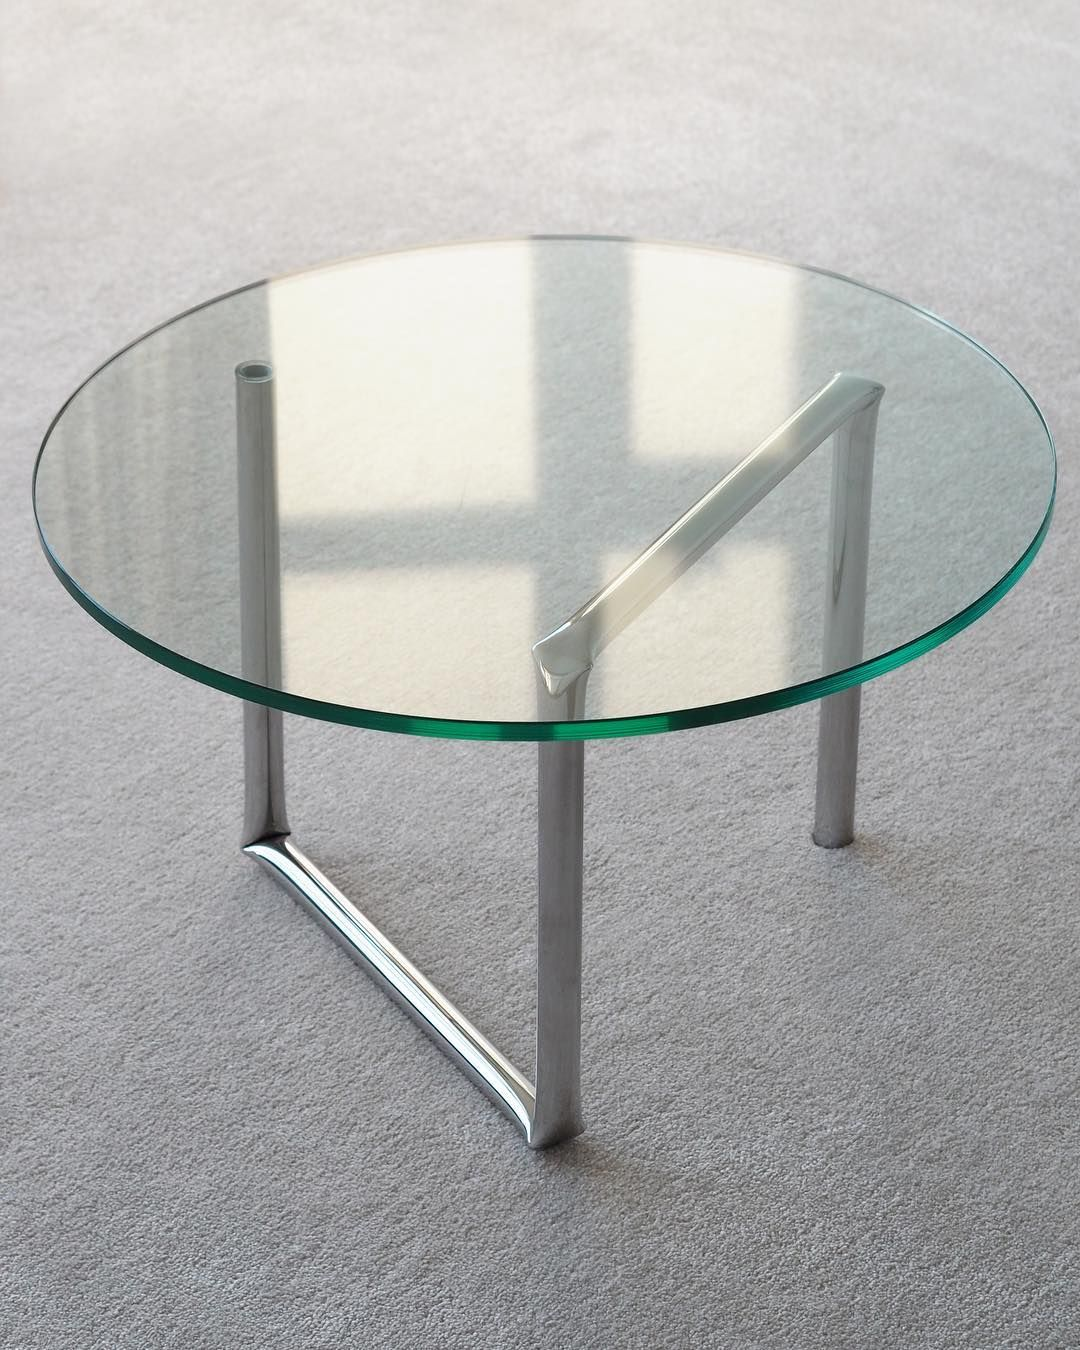 A E T E L I E R On Instagram Four Blunt Bends Turn A Polished Stainless Steel Tube Into Our Knikfraem Table Aetelier Coffee Table House Design Trendy Home [ 1350 x 1080 Pixel ]